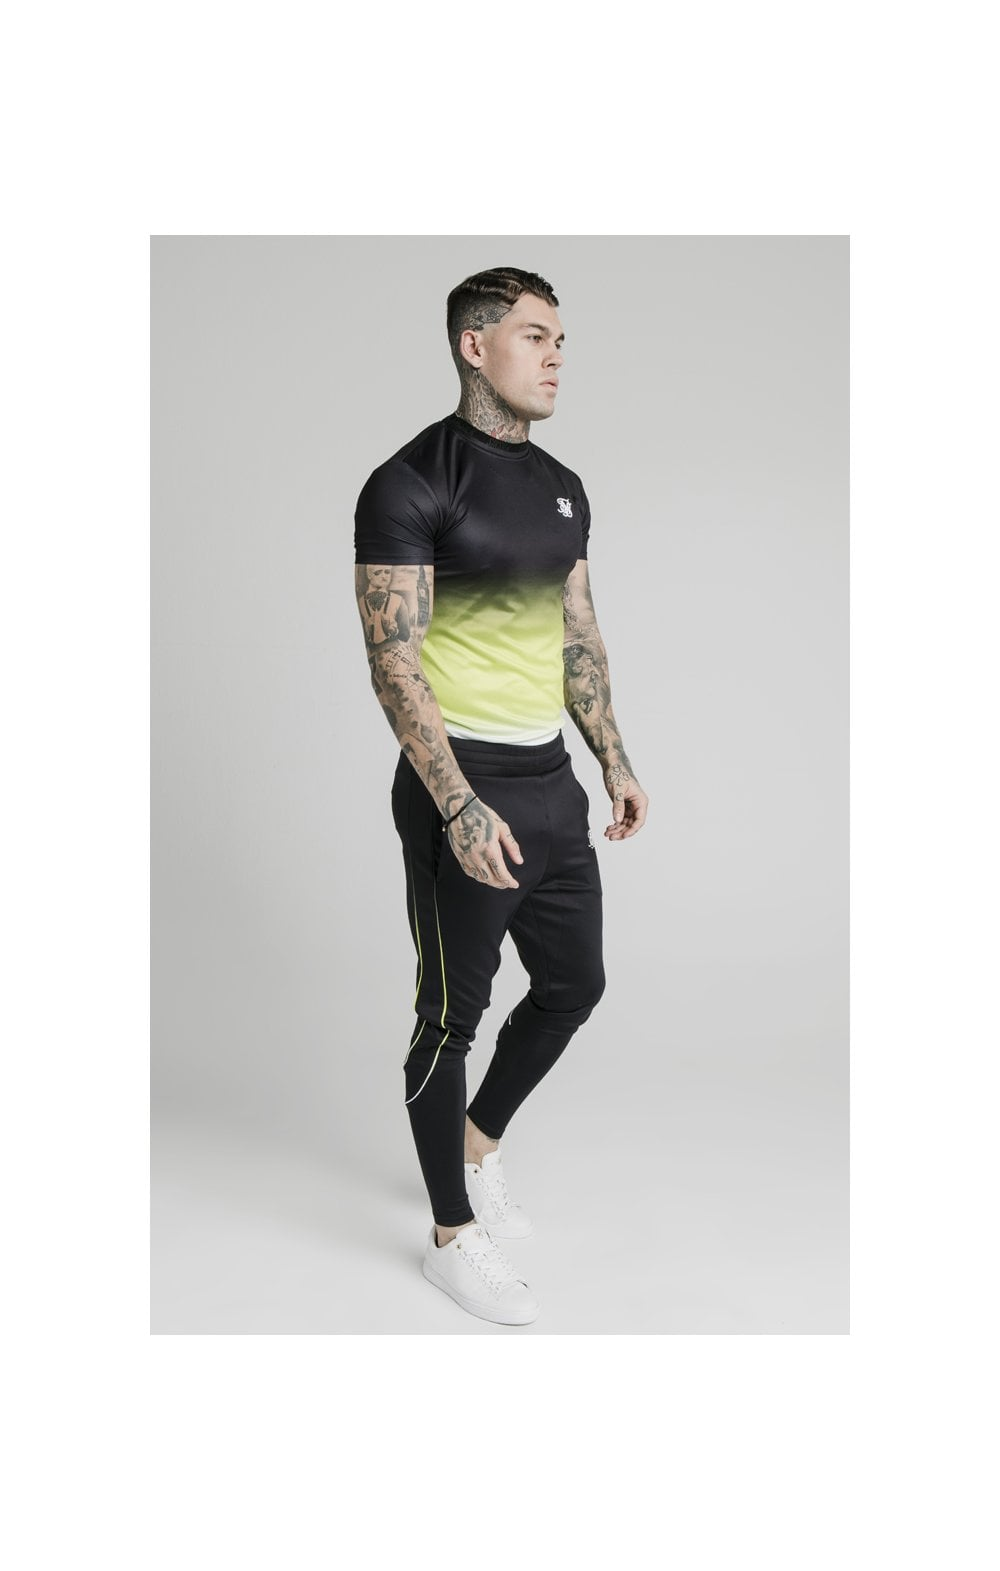 SikSilk S/S Tri Fade Tape Collar Tee - Black, Fluro & White (3)